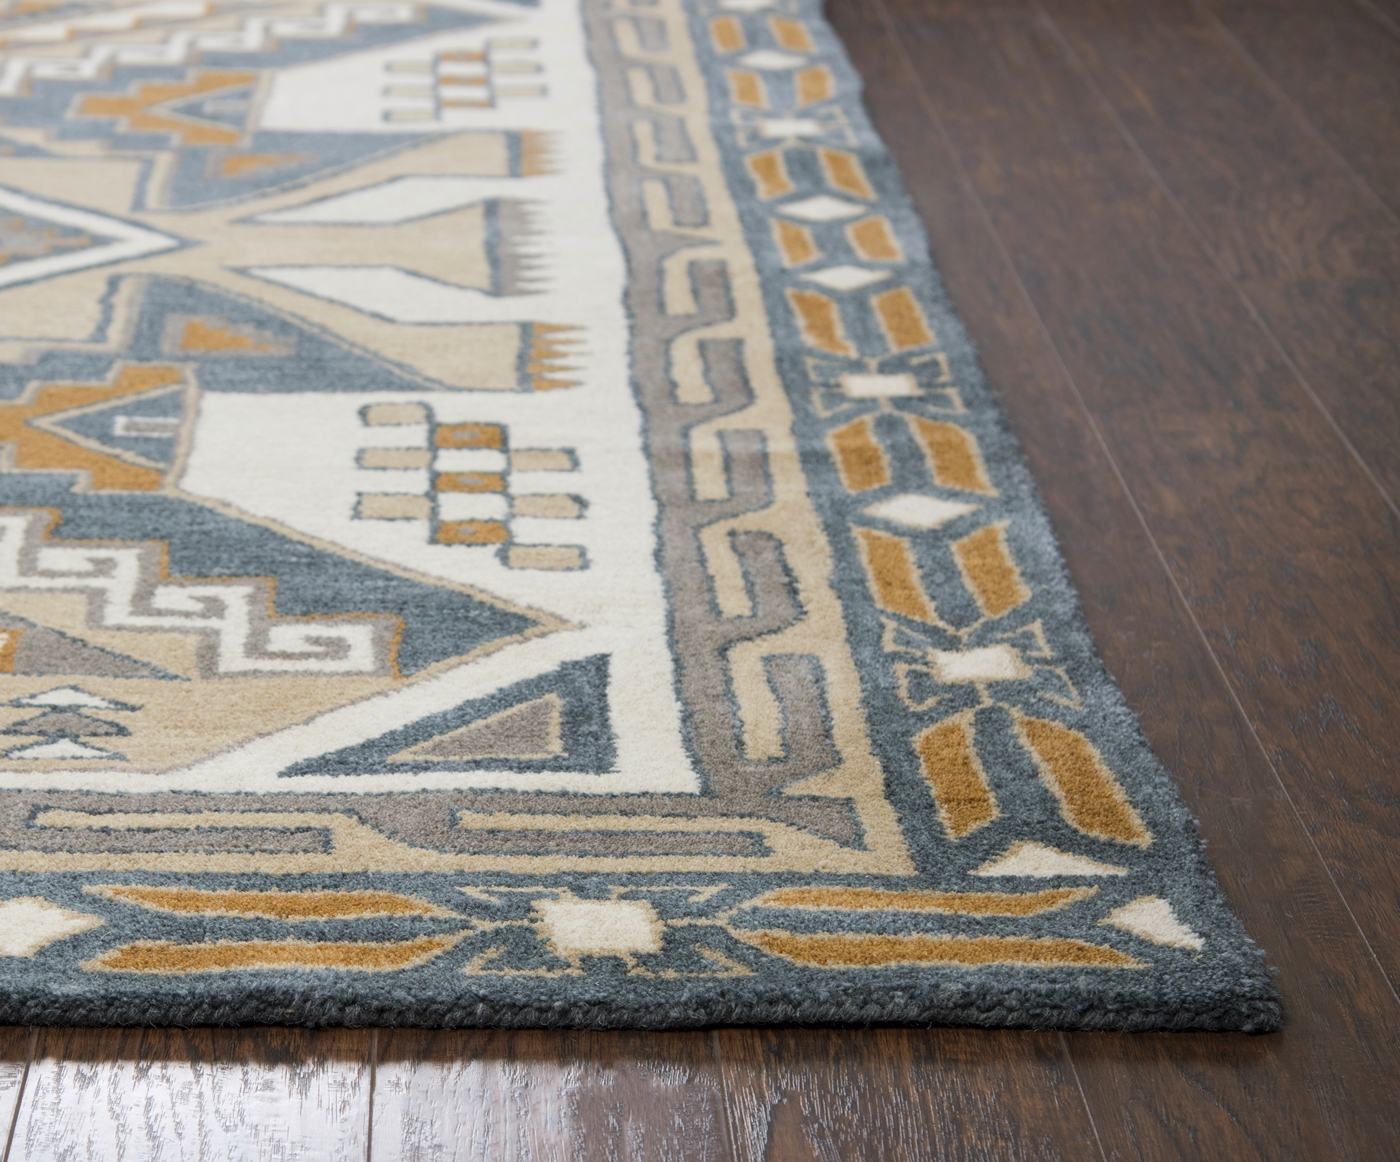 Southwest Ornate Aztec Wool Area Rug In Gray Amp Tan 8 X 10